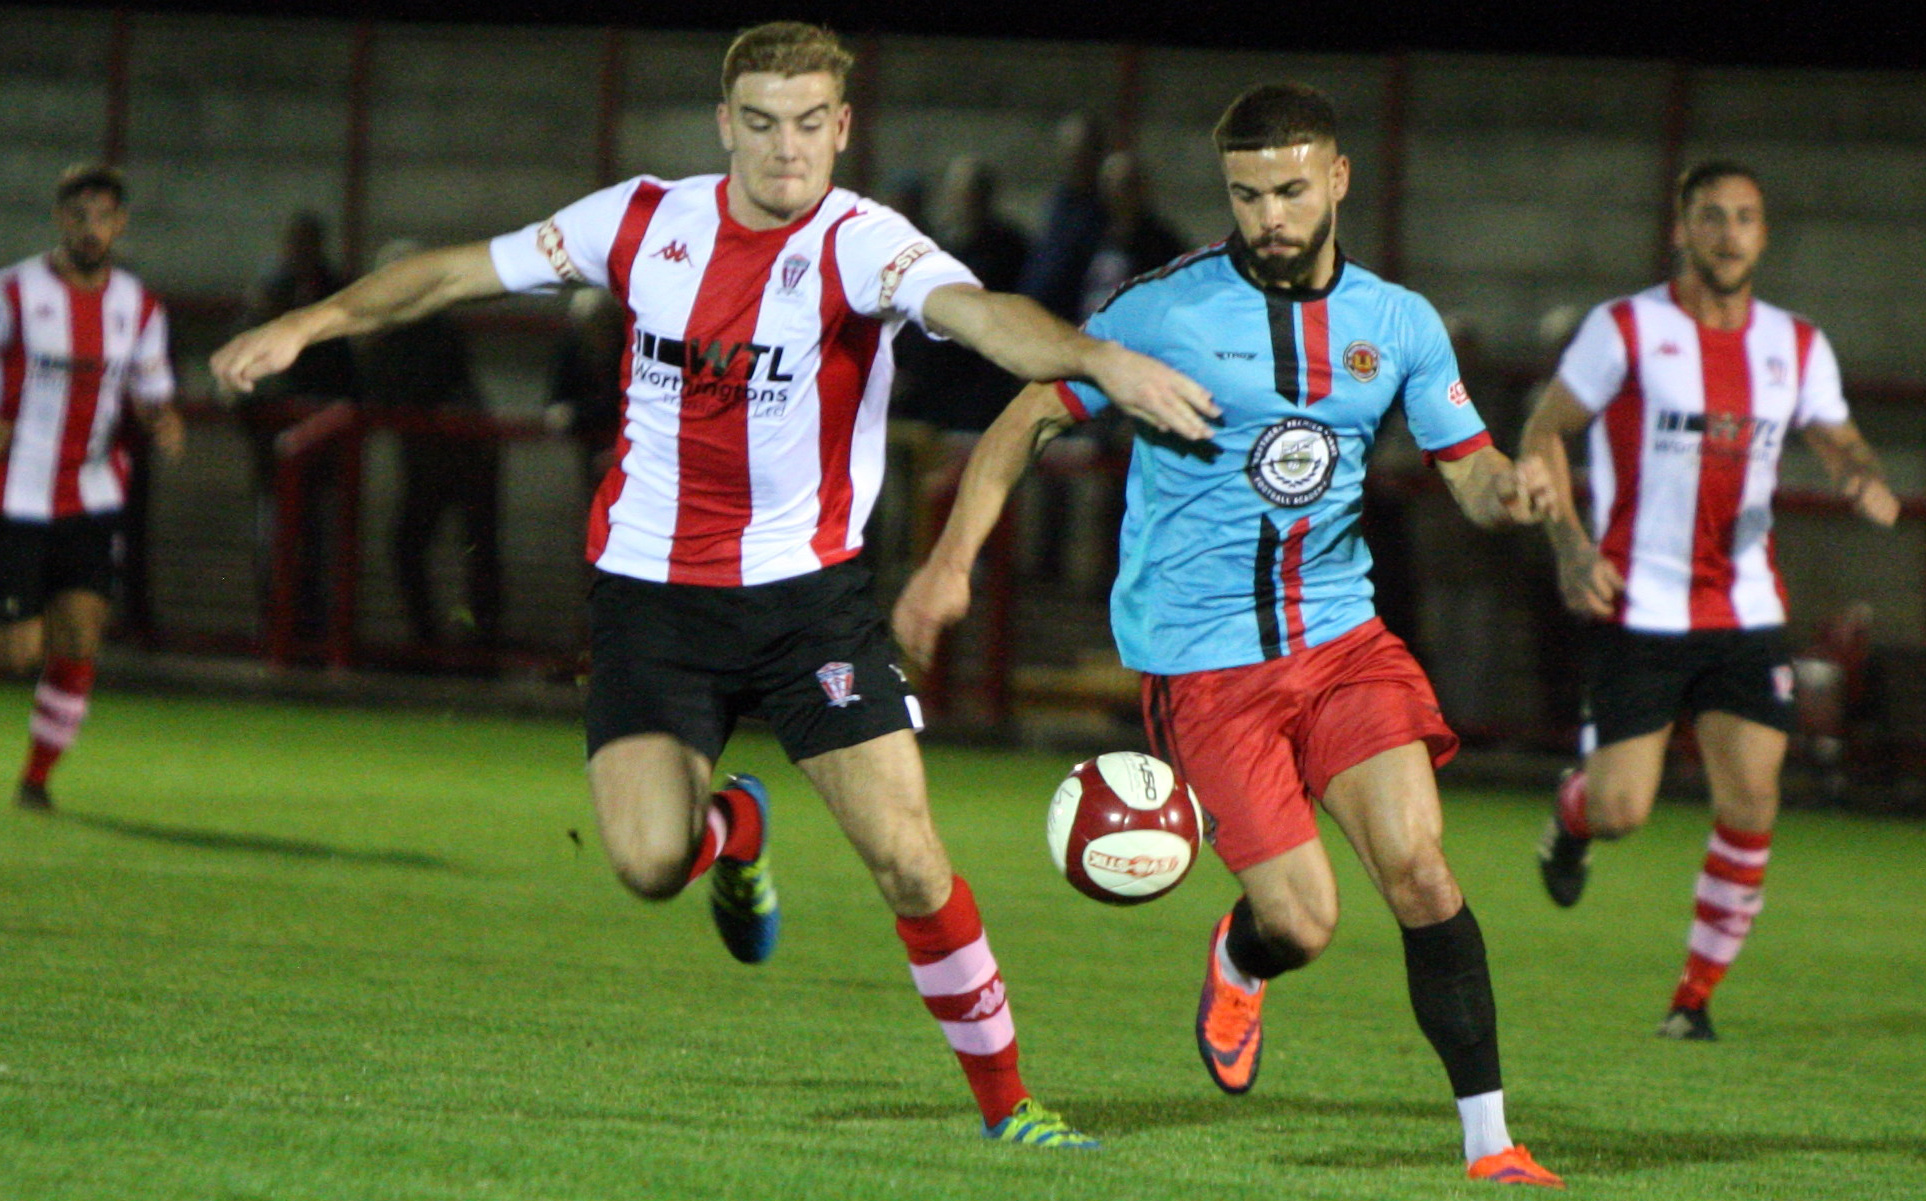 Josh Wardle, left, attempt to block Evan Garnett's path to goal during Witton Albion's defeat against Mickleover Sports on Tuesday. Picture: Keith Clayton